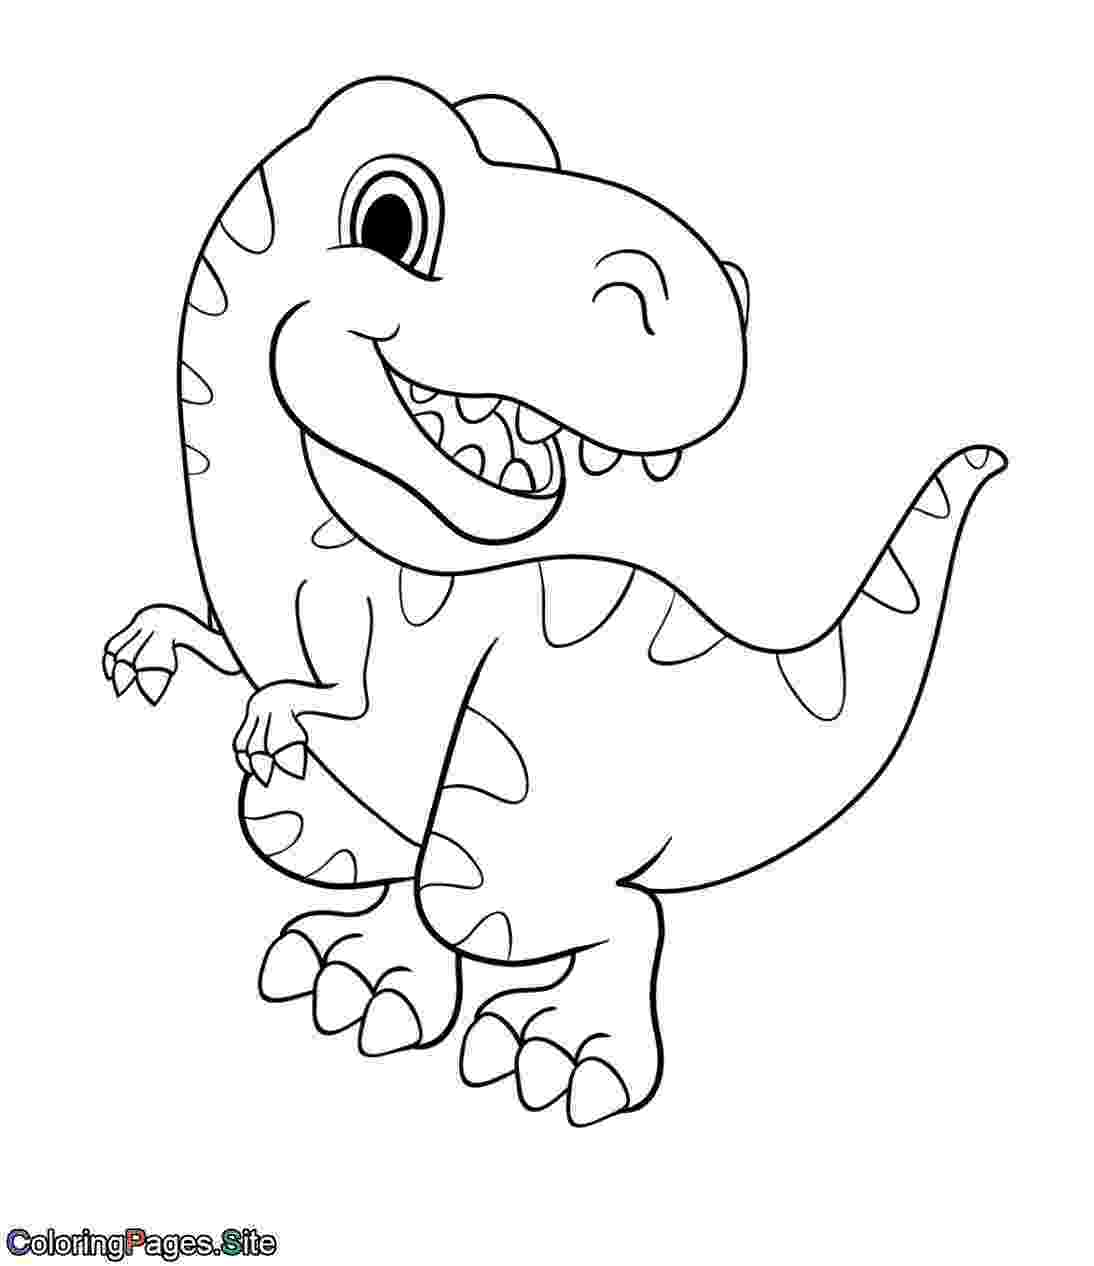 triceratops pictures to color dinosaur coloring pages 12 ba dinosaur coloring pages lrcp pictures color triceratops to